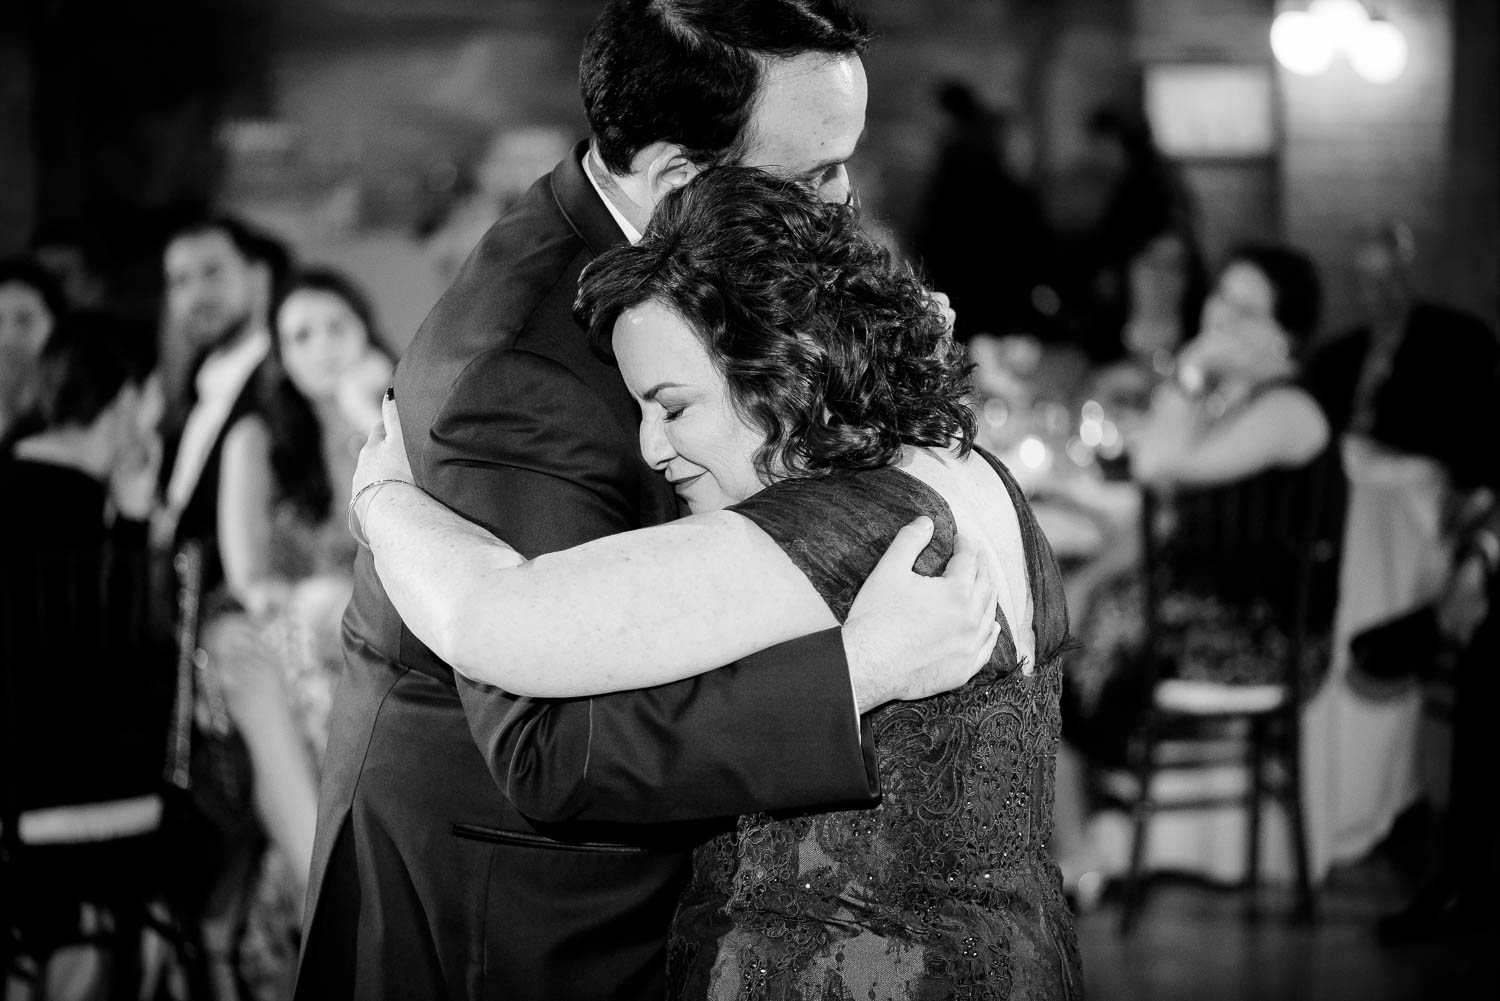 Emotional moment with mother of the groom during a Cafe Brauer Chicago wedding reception.